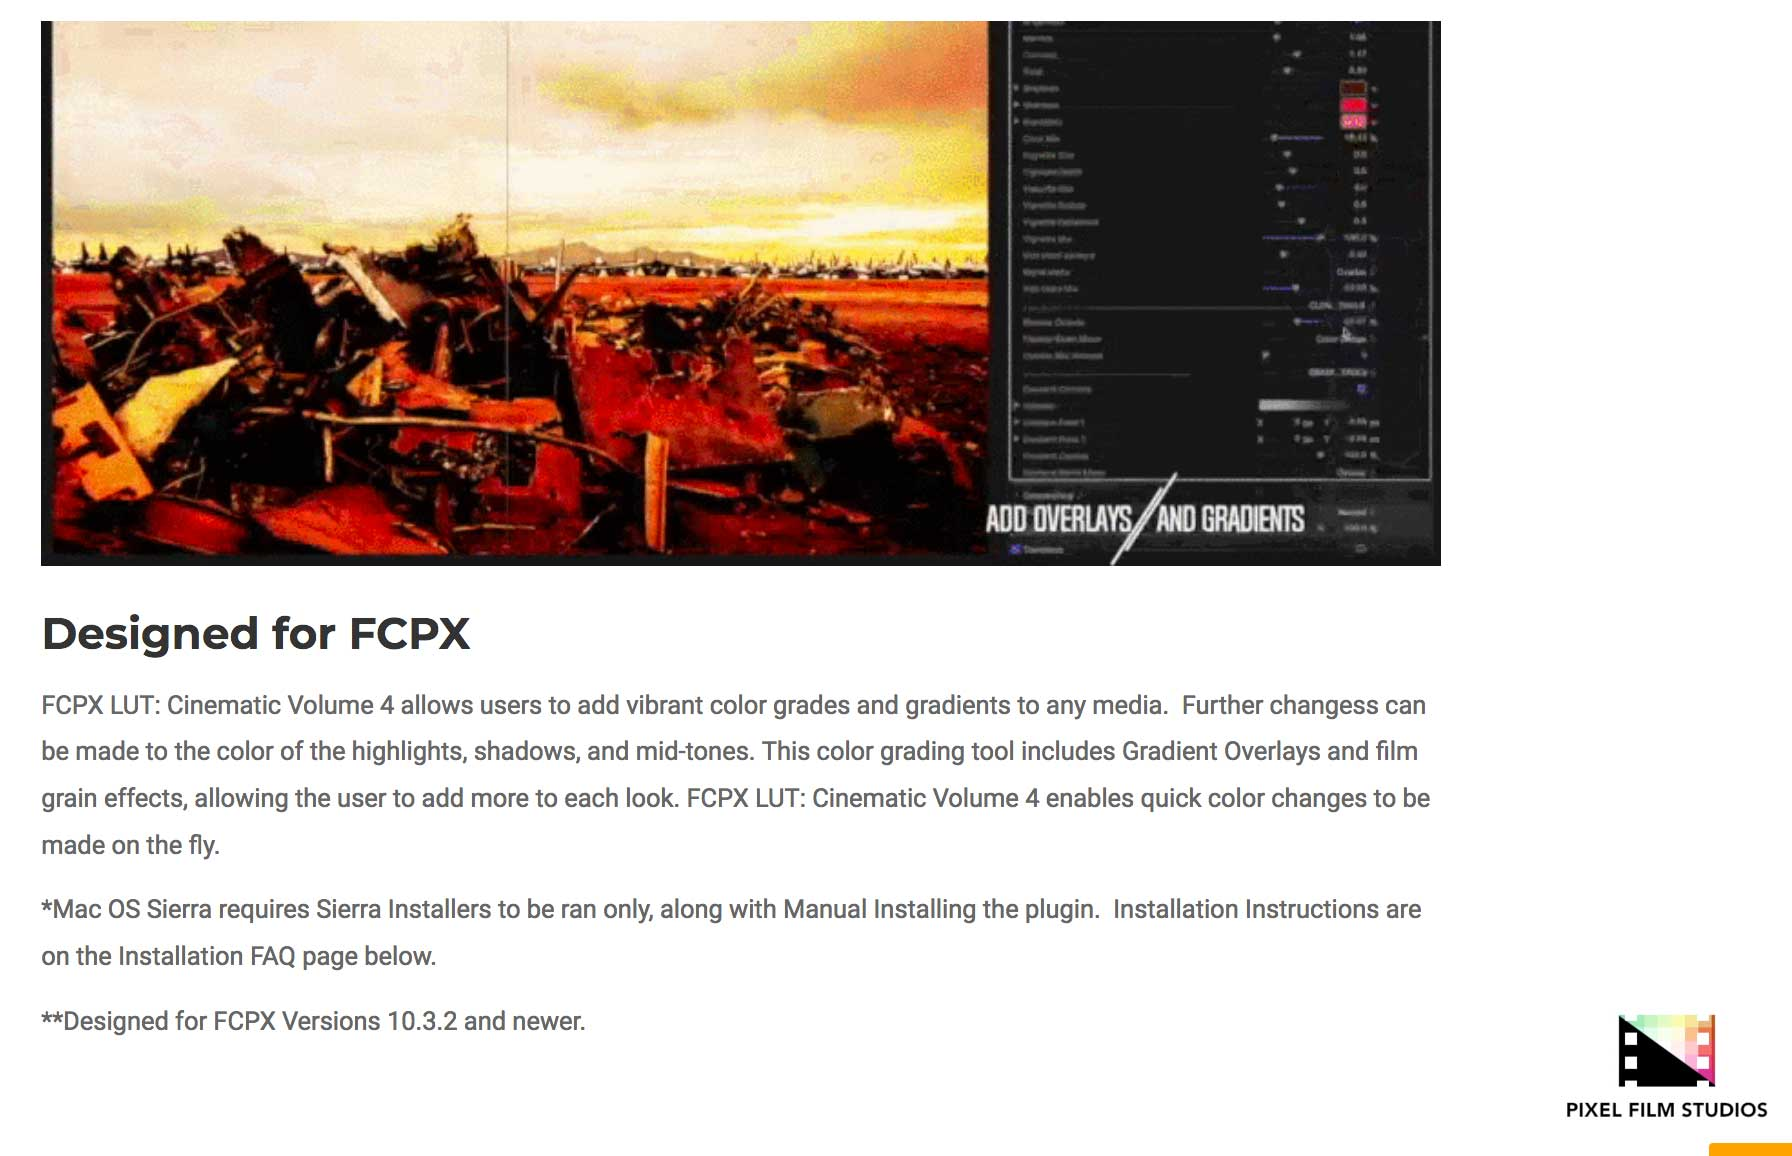 Fcpx Lut Cinematic Volume 4 Was Released By Pixel Film Studios For